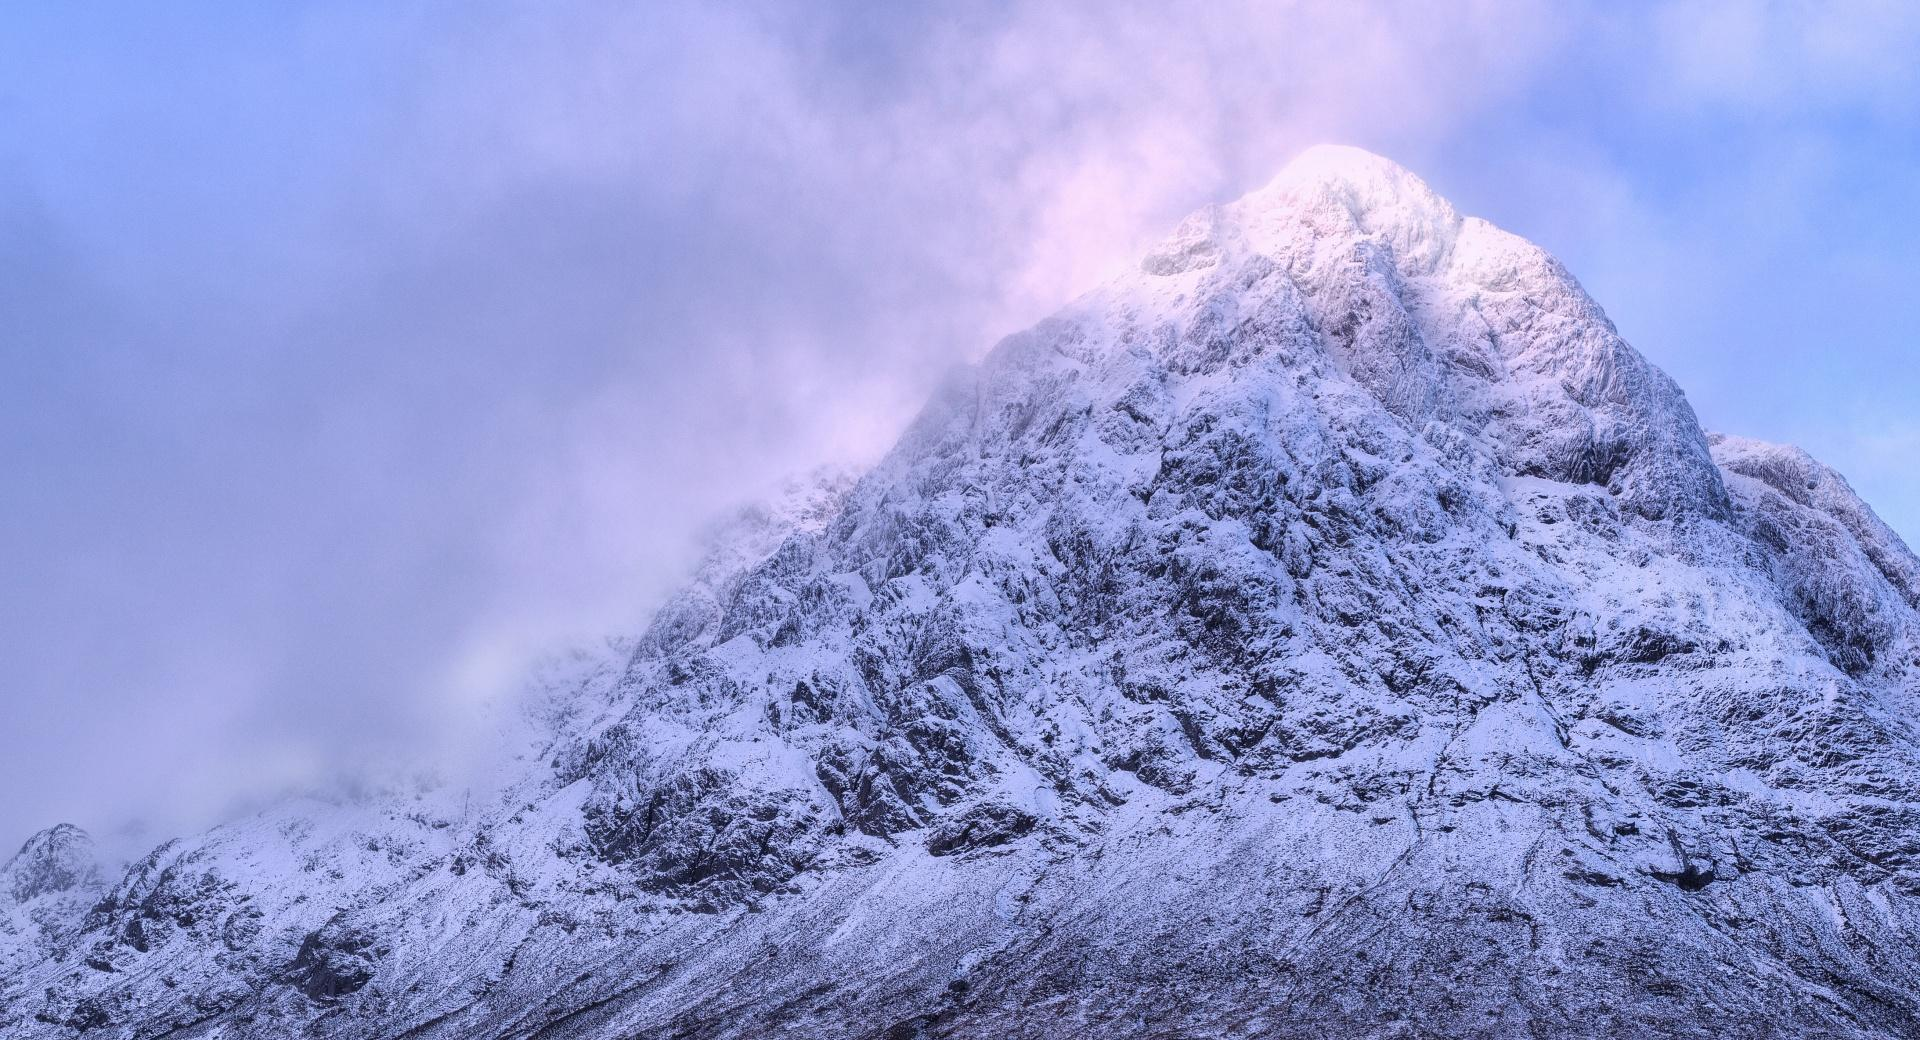 Buachaille Mountain Peak wallpapers HD quality